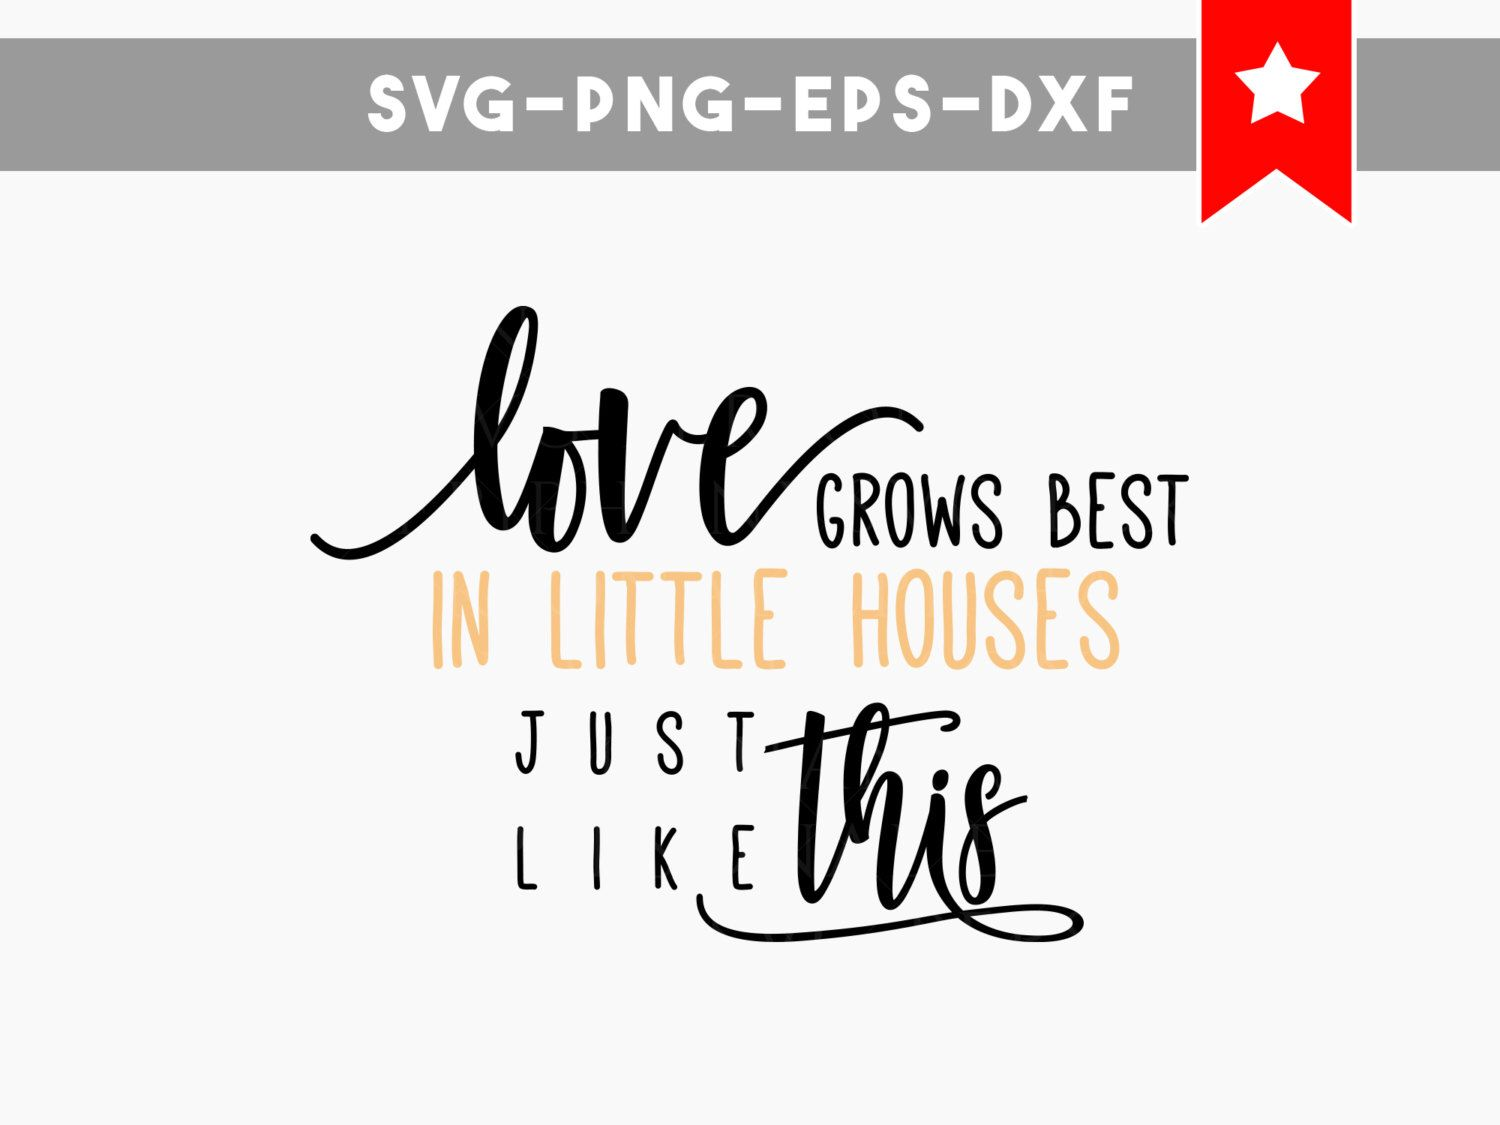 Commercial Quotes Love Grows Best Svg Little Houses Svg Home Family Quotes Svg